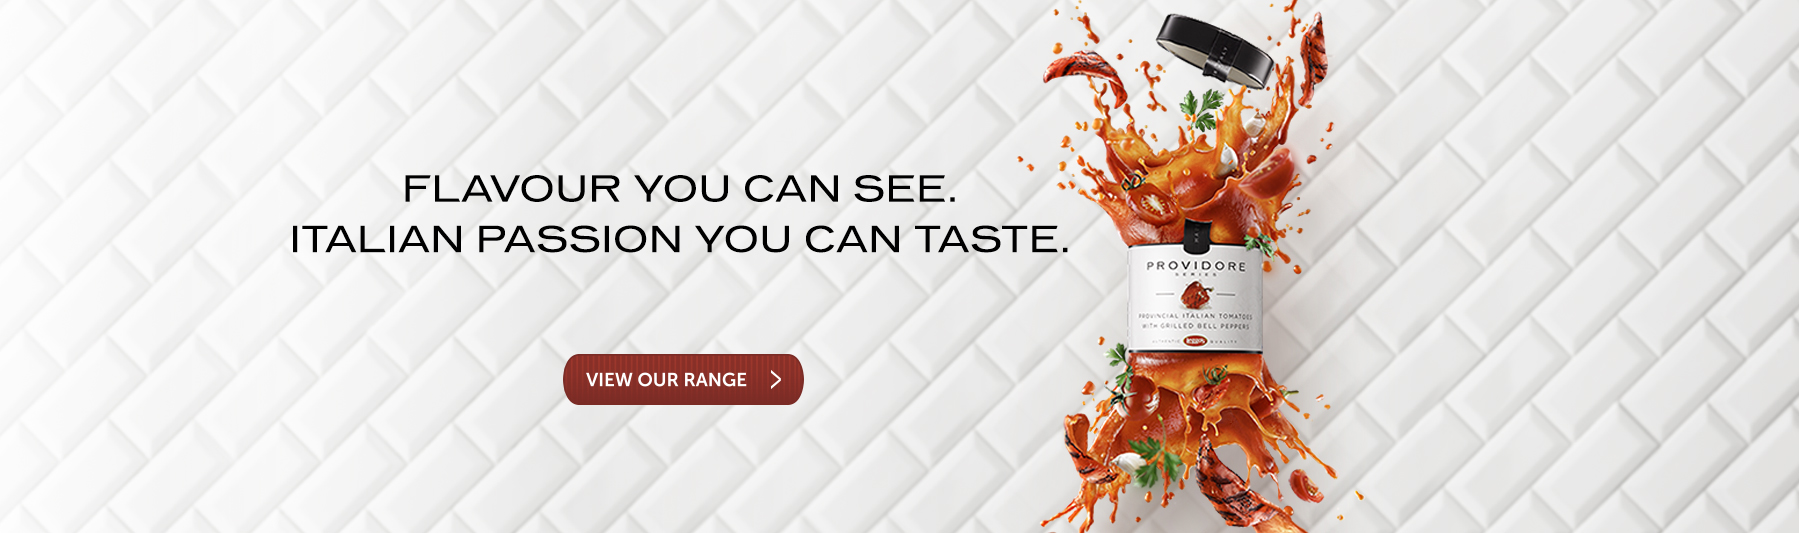 Providore-Peppers-Web-Banner jpg